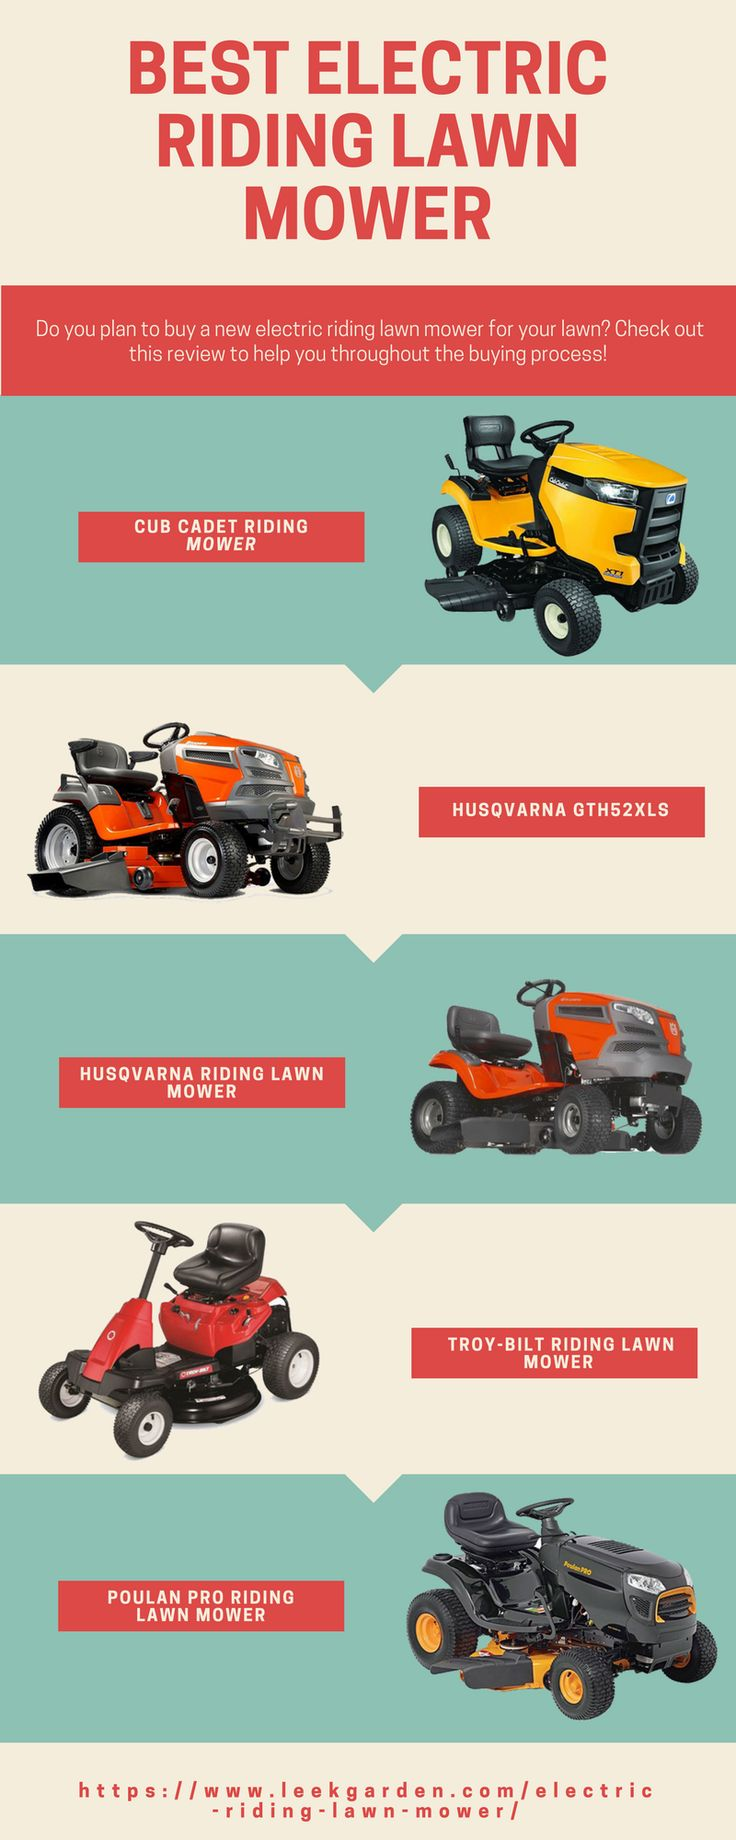 Do you plan to buy a new electric riding lawn mower for your lawn? Check out this review to help you throughout the buying process!